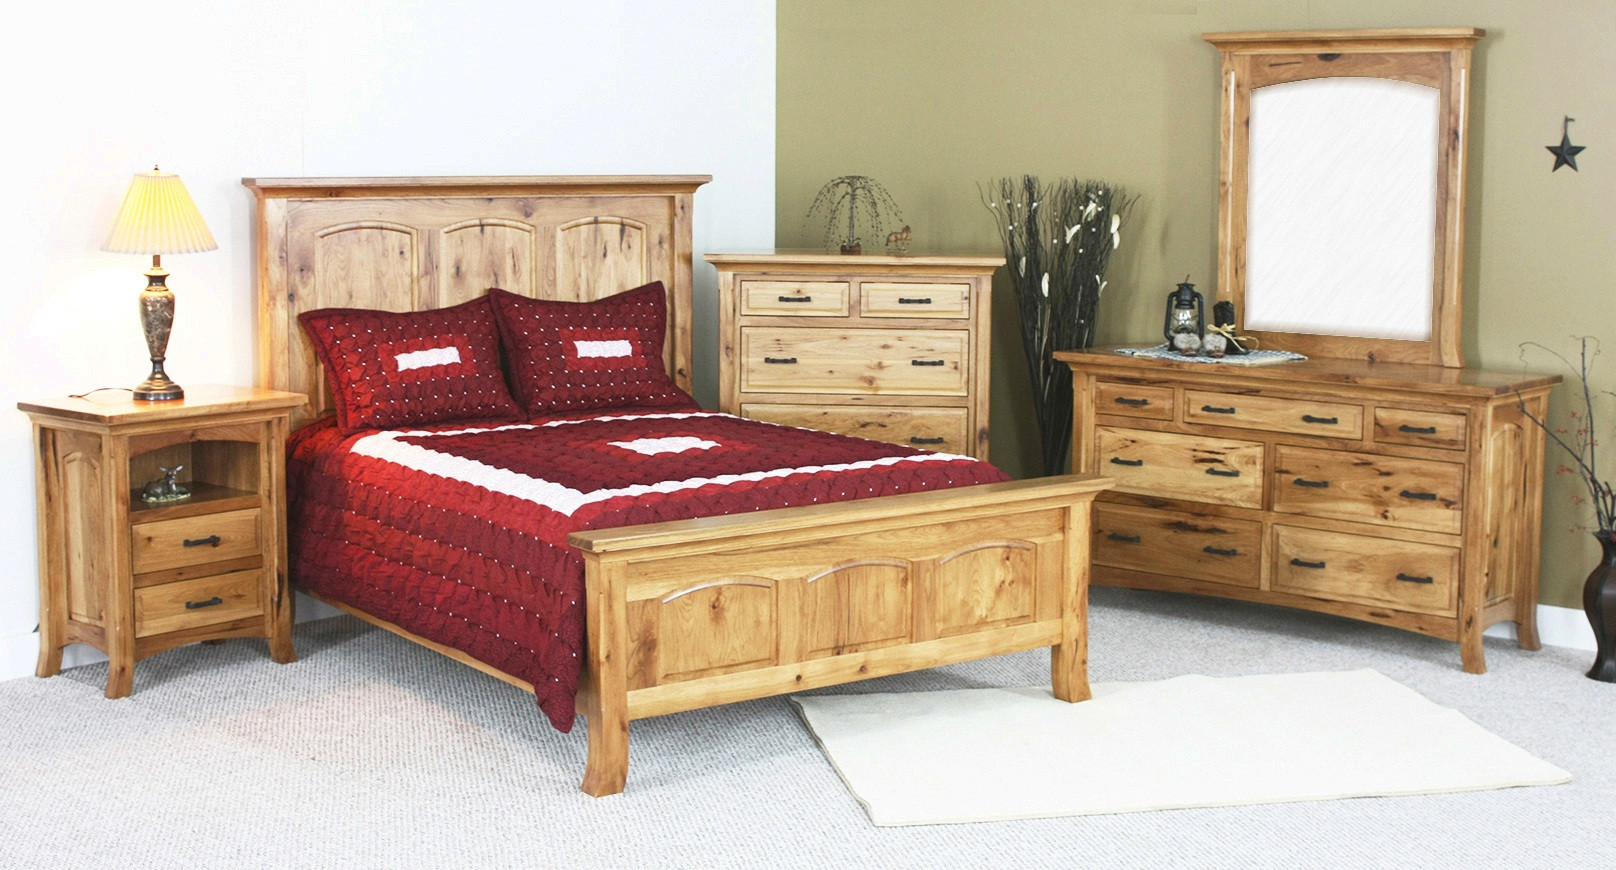 Best ideas about Amish Bedroom Furniture . Save or Pin Bedroom Sets Amish Bedroom Collection Now.